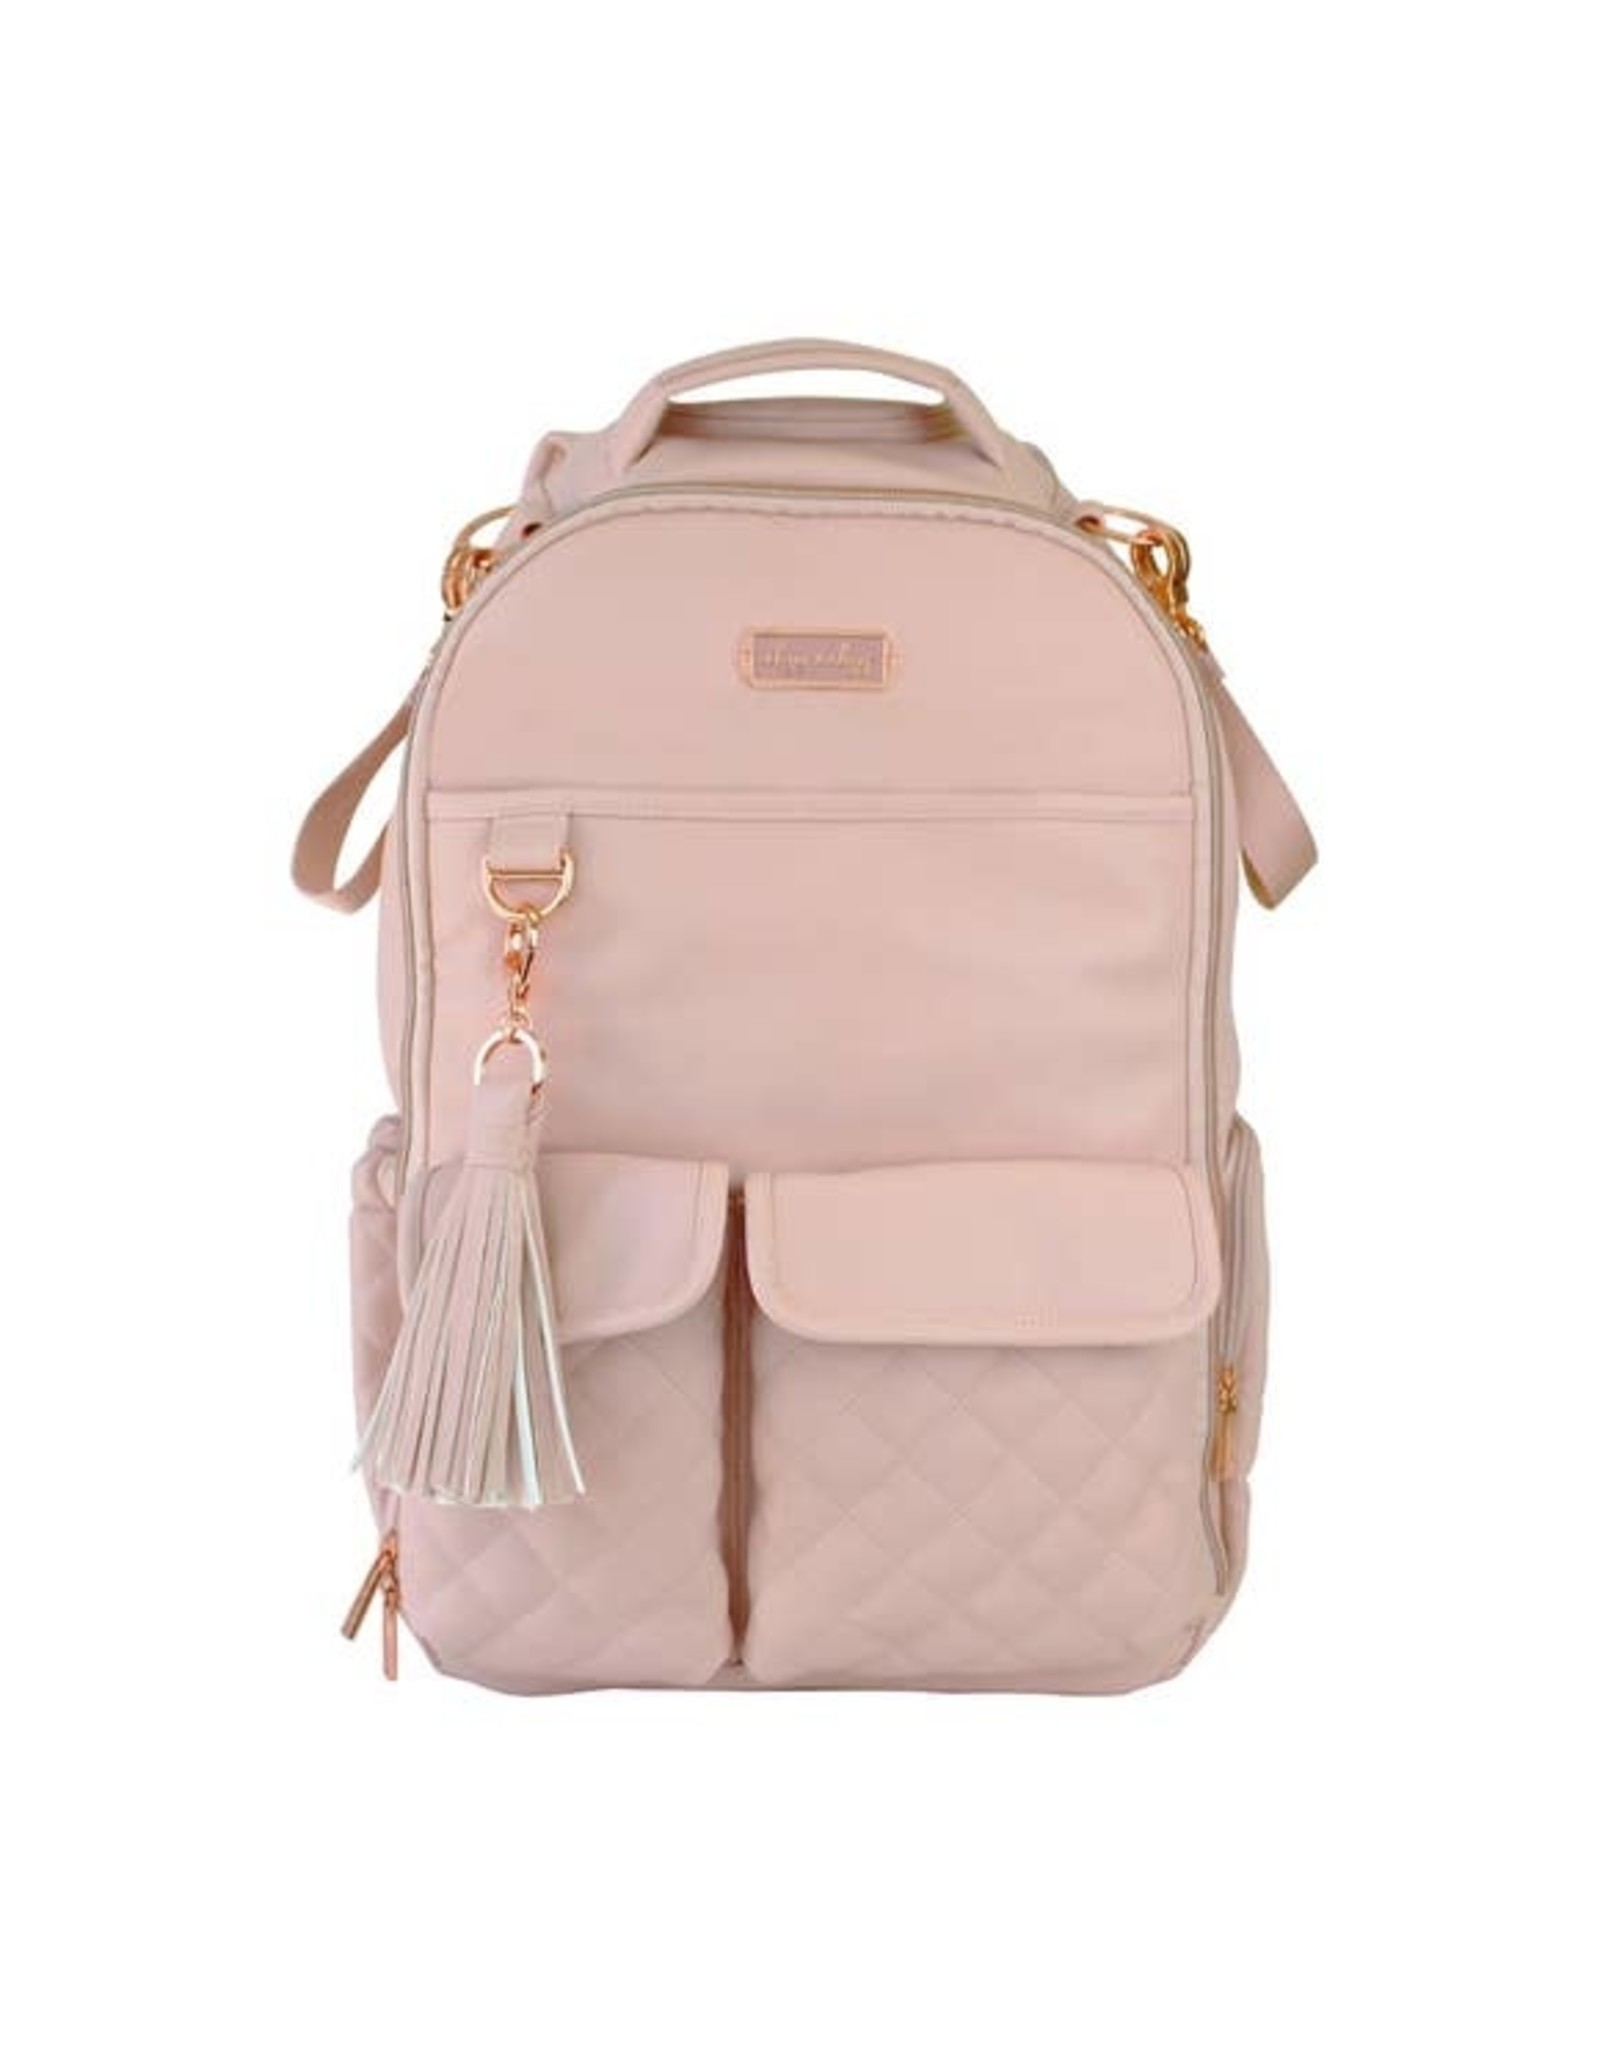 Itzy Ritzy Itzy Ritzy - Boss Diaper Bag Backpack: Blush